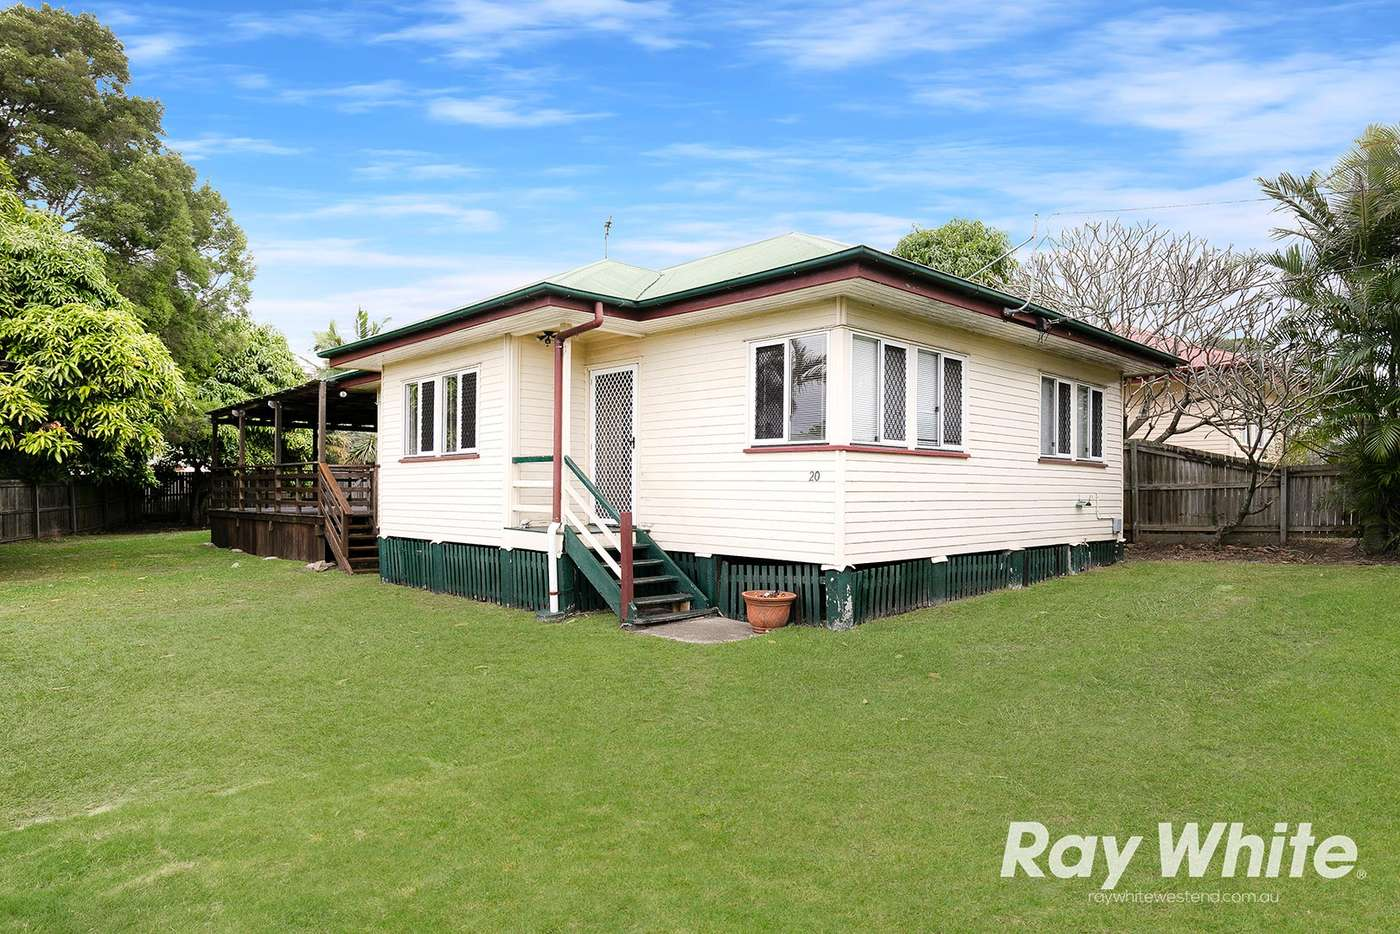 Main view of Homely house listing, 20 Tolmie Street, Zillmere QLD 4034